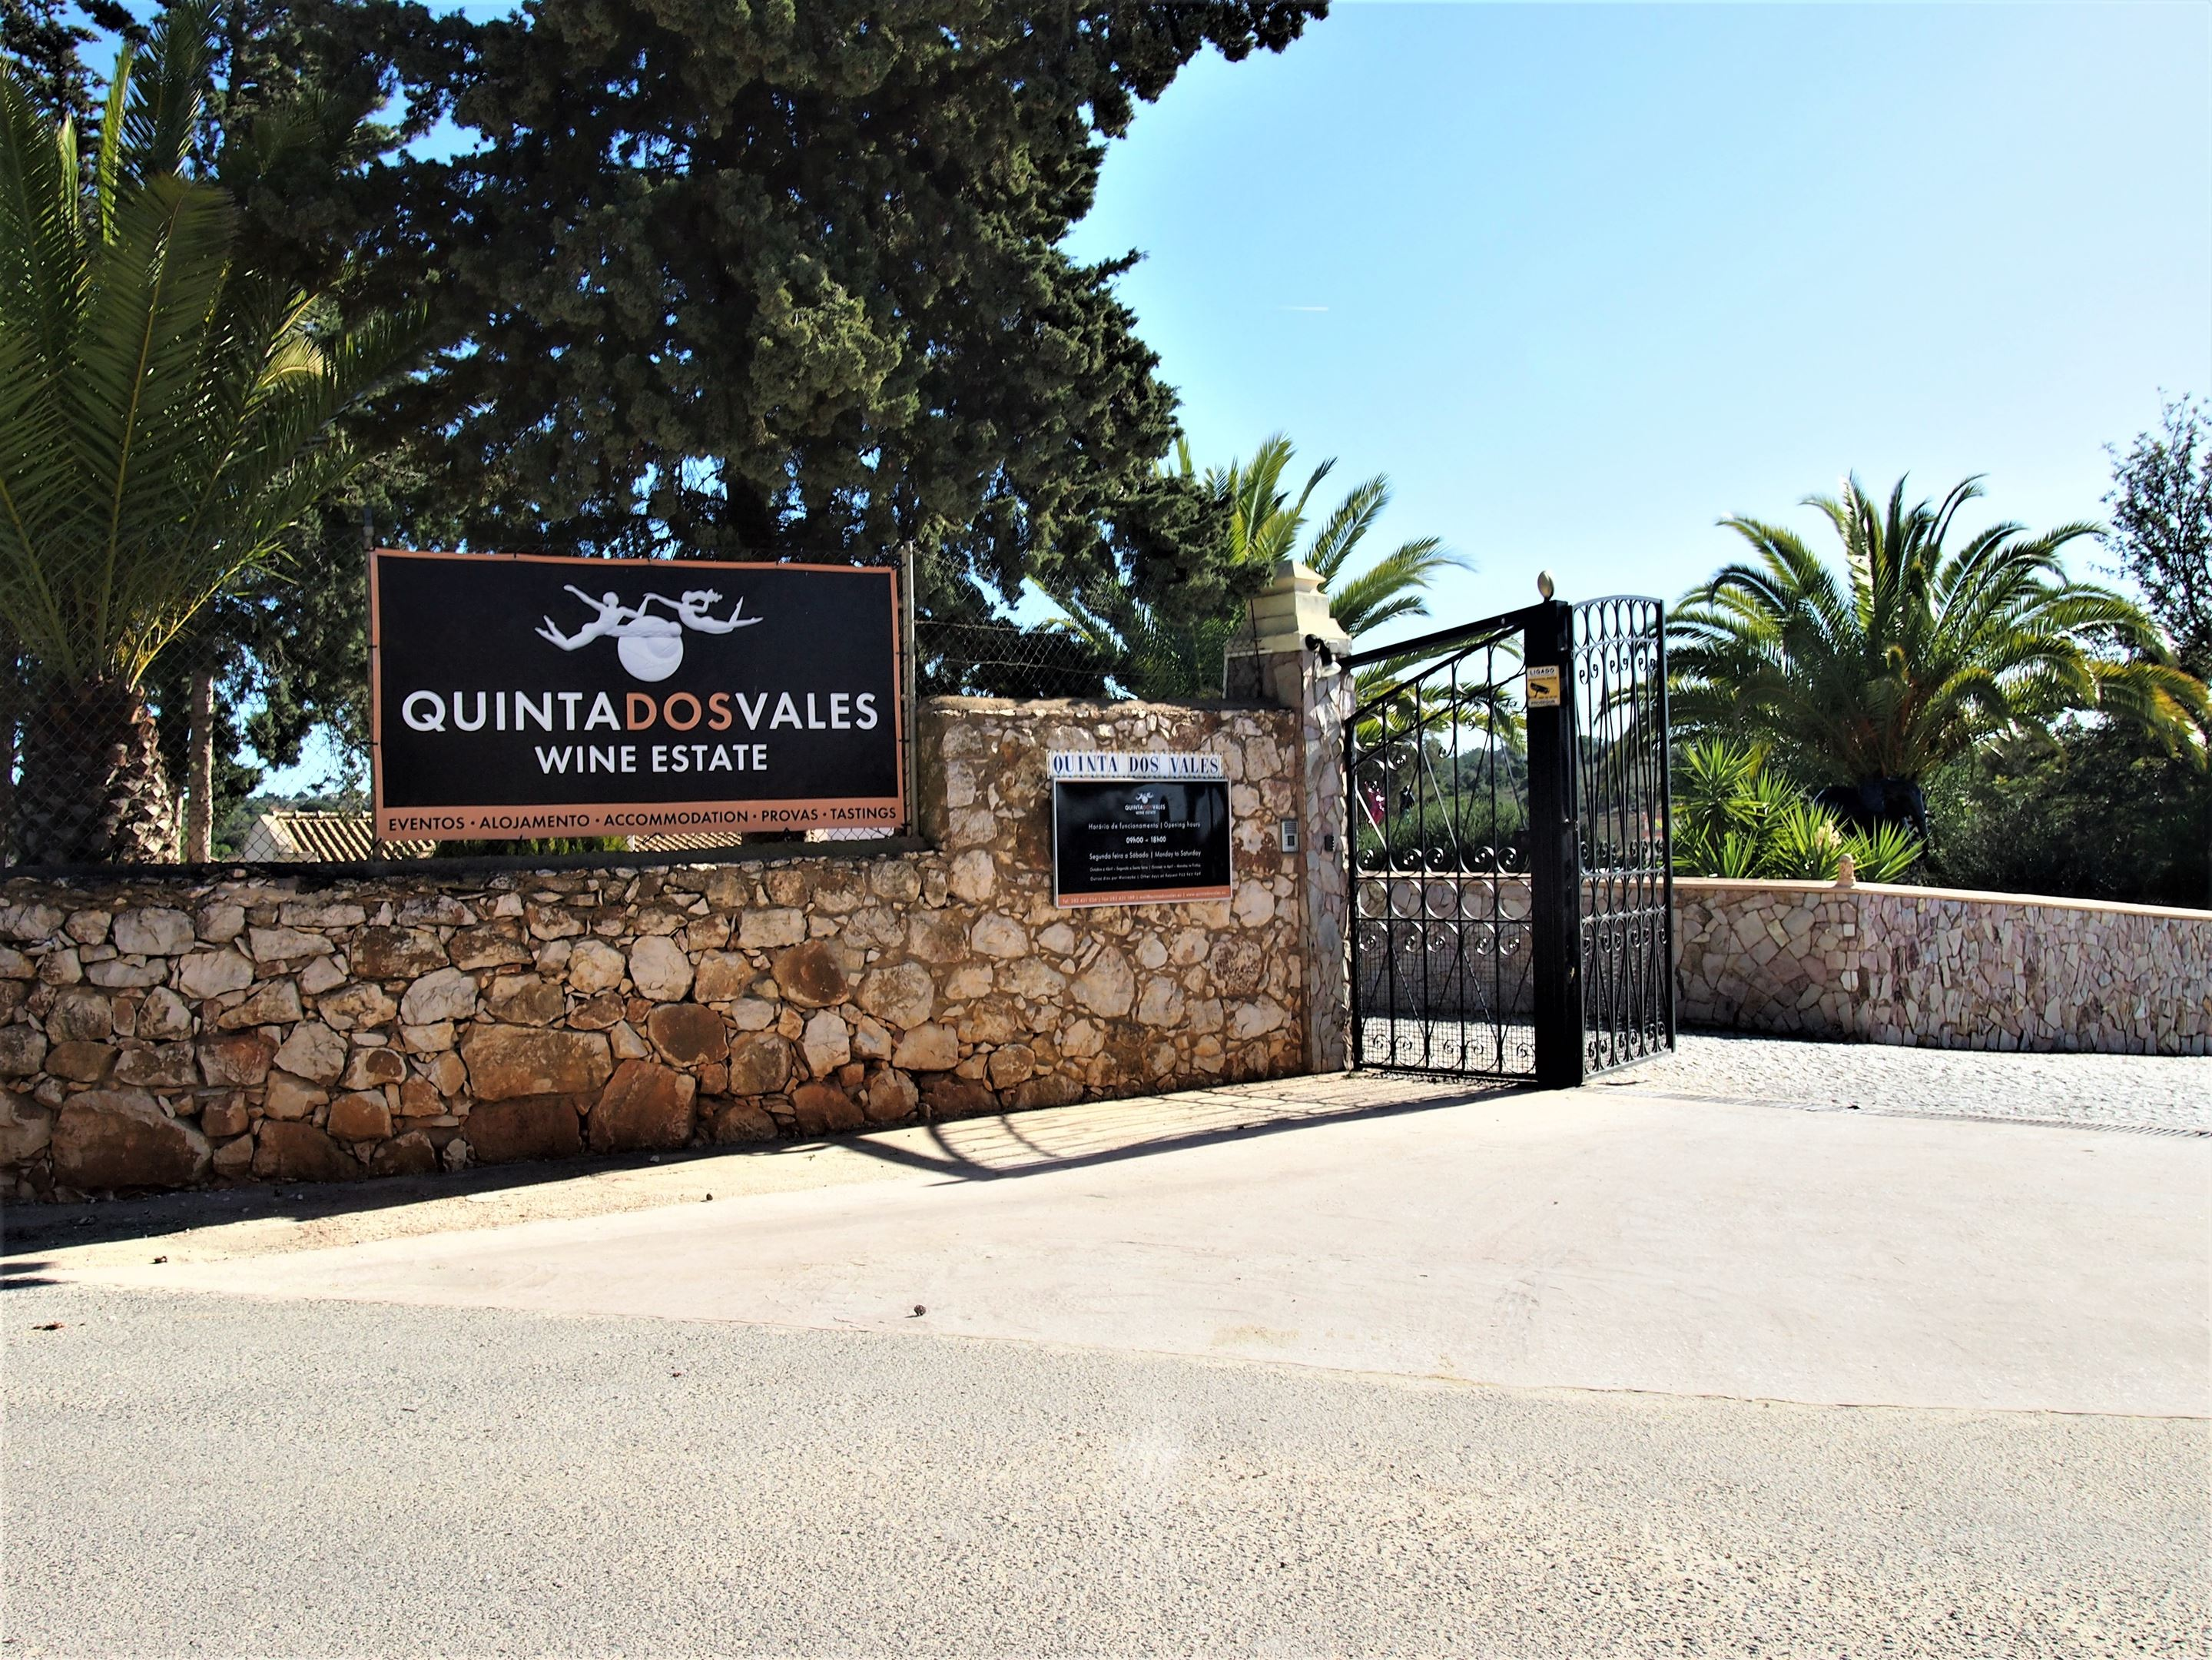 Quinta dos Vales vineyard at Estombar, Algarve (Interested in having your own wine or small vineyard? Then contact us)